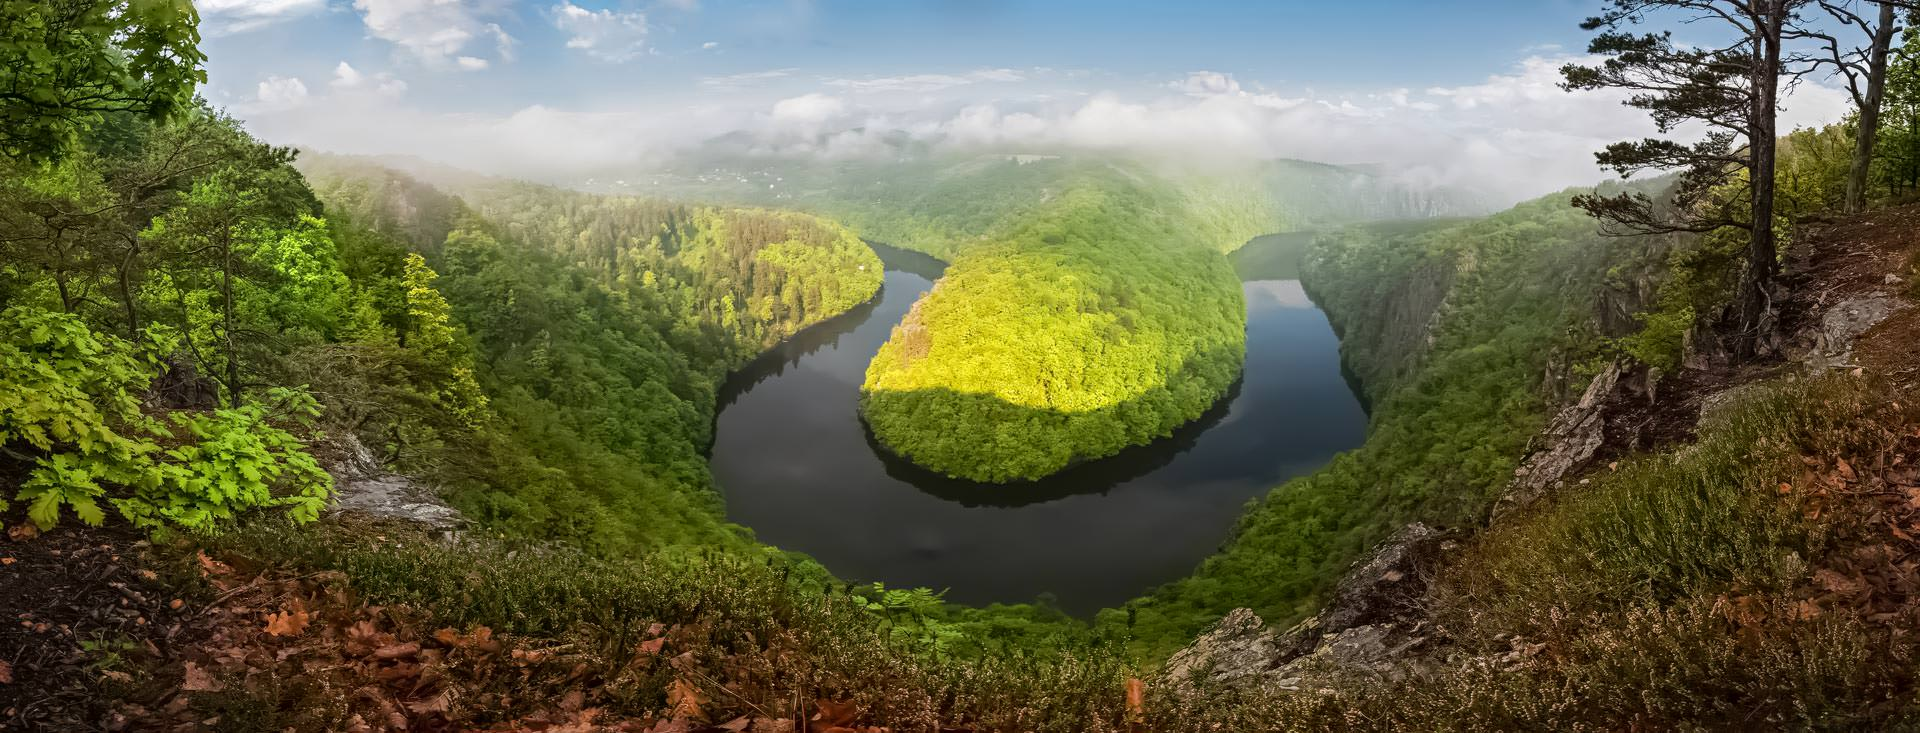 Panoramic view of the Vltava Meander near Teletín, Central Bohemia, Czechia